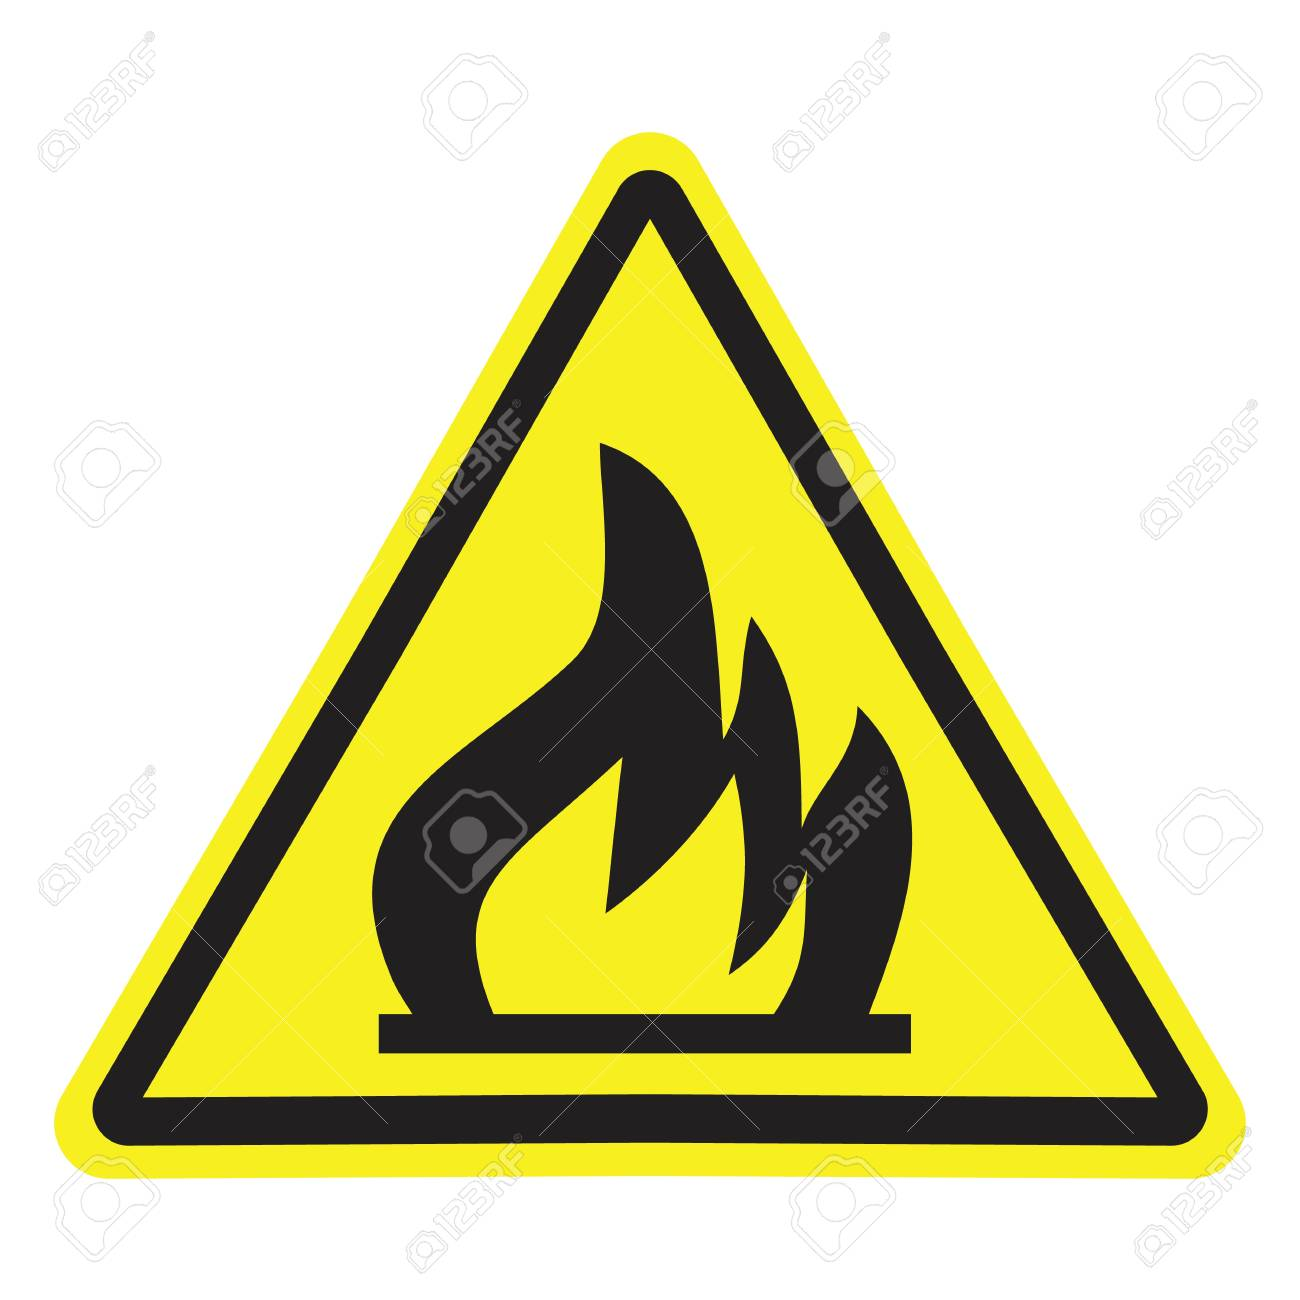 Fire warning sign in yellow triangle. Flammable, inflammable substances icon. - 121201455